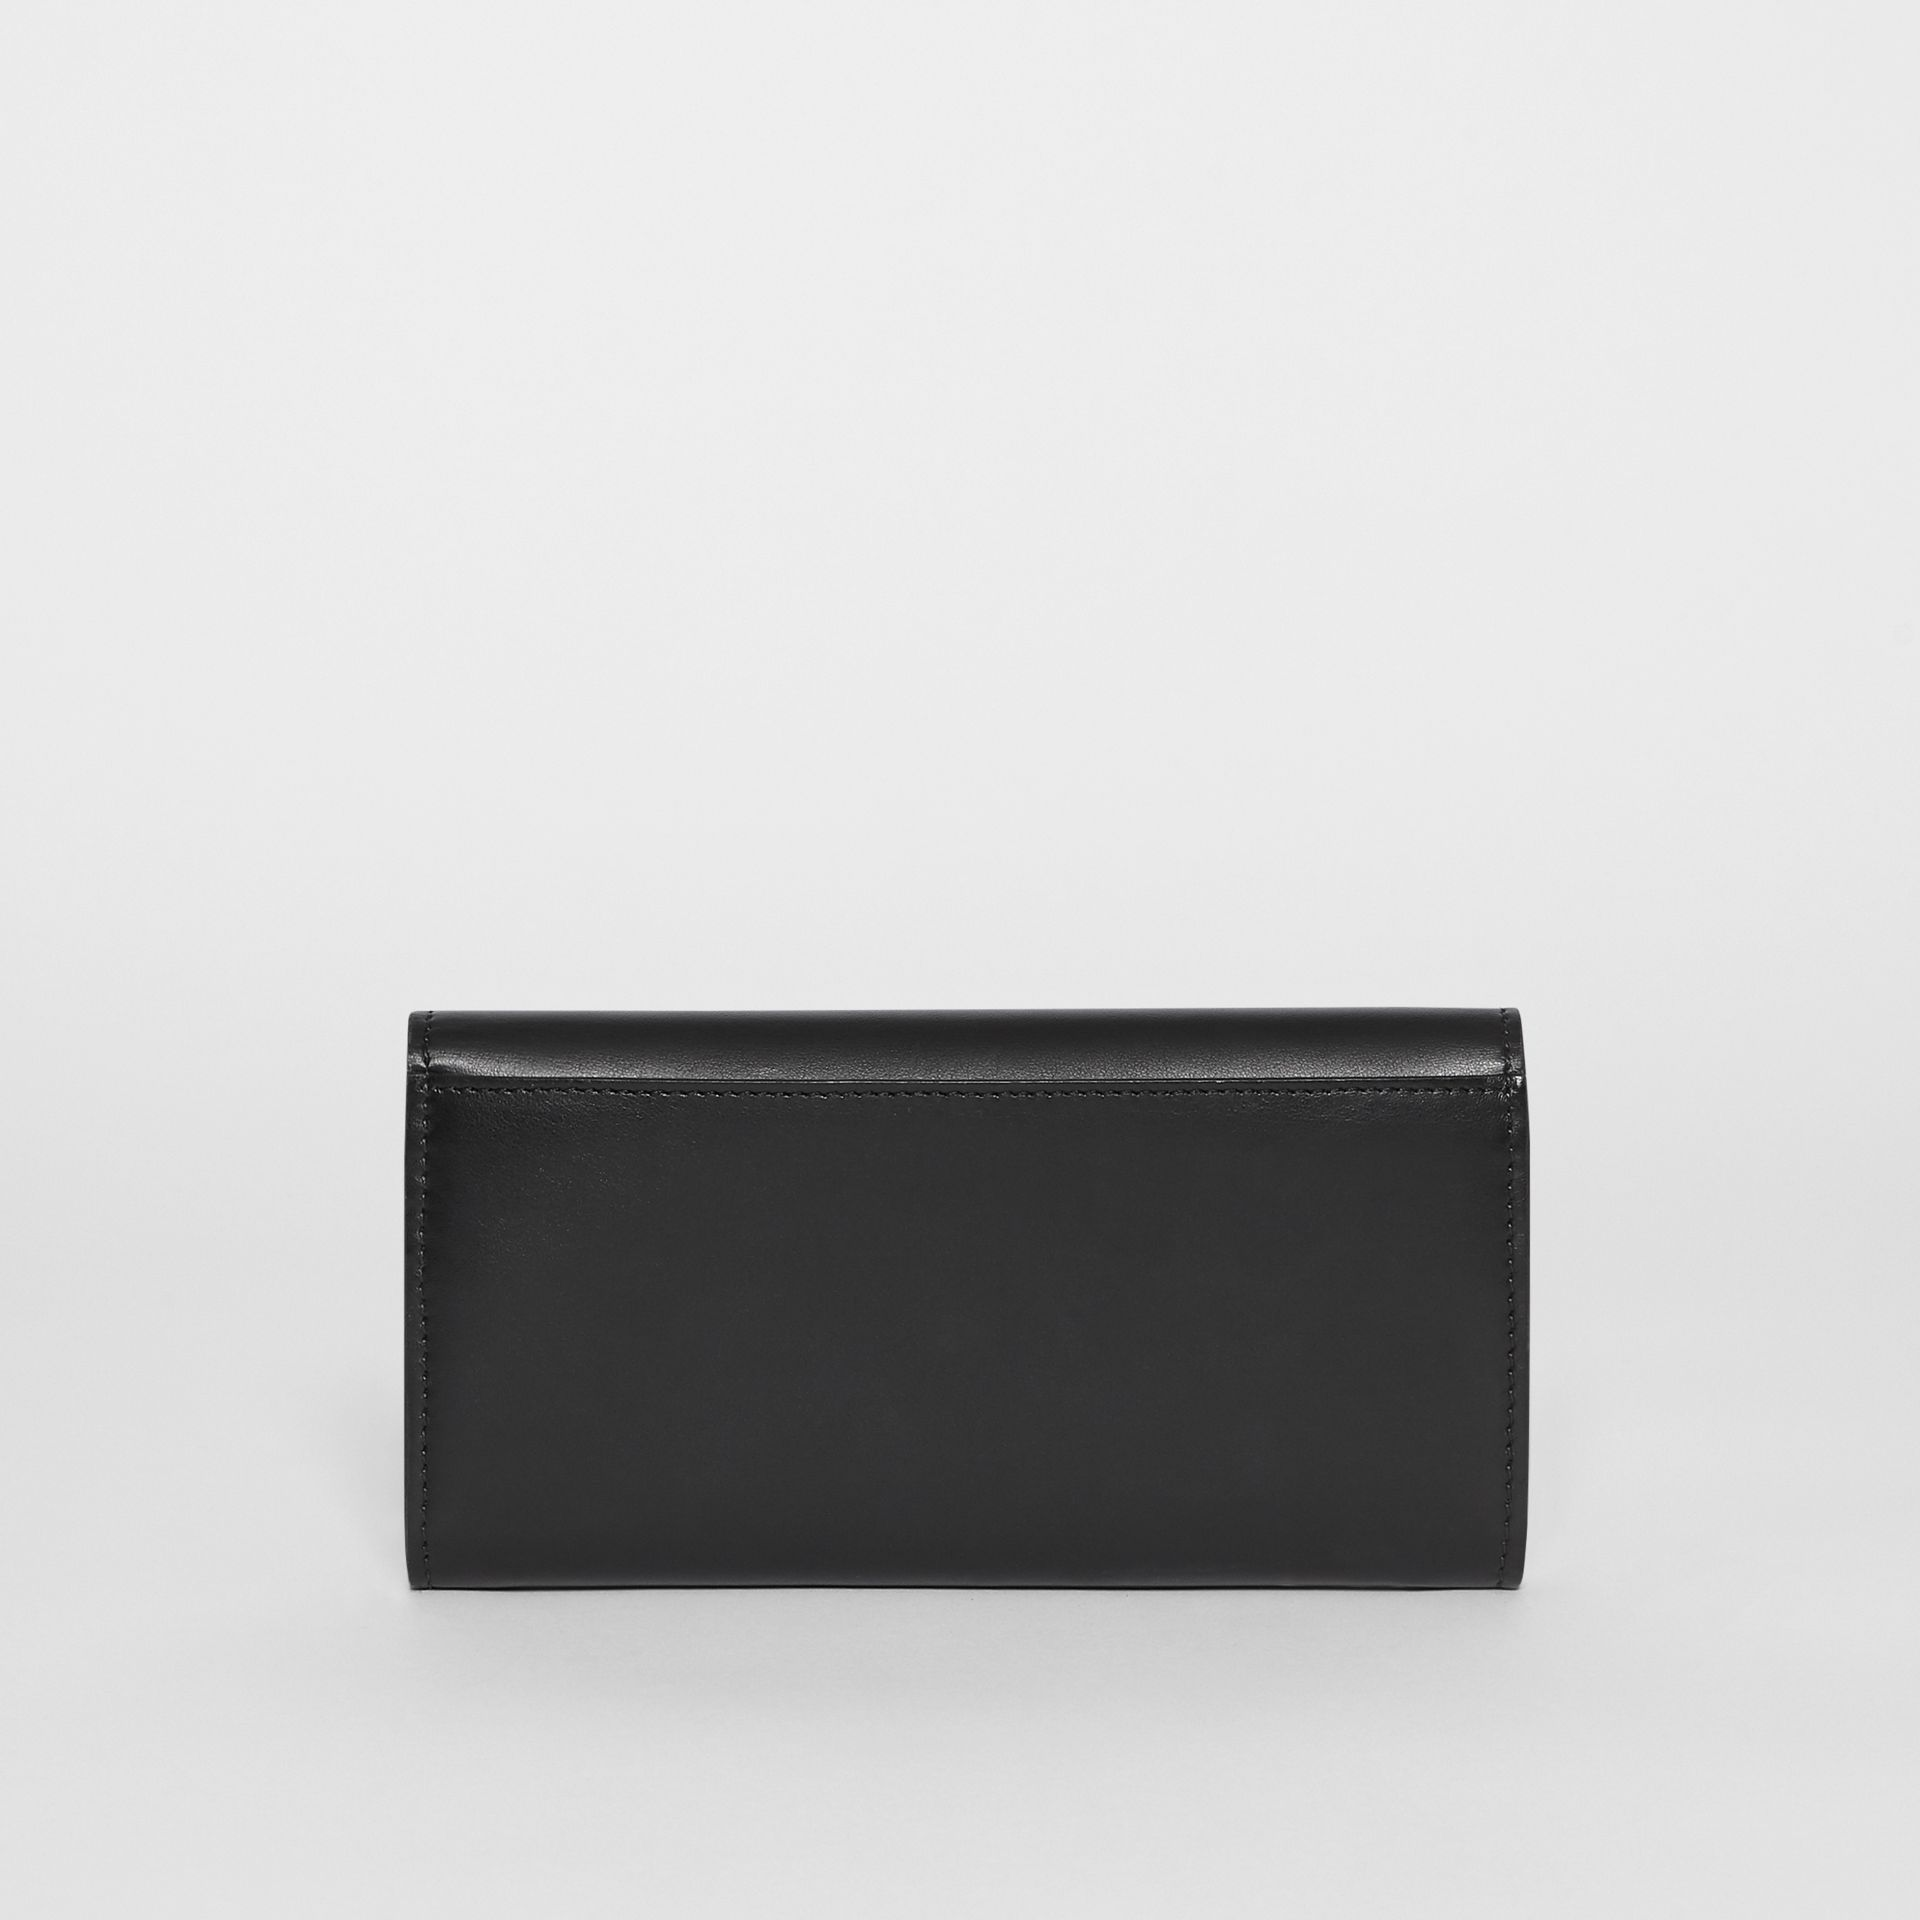 Monogram Motif Leather Continental Wallet in Black - Women | Burberry Australia - gallery image 5